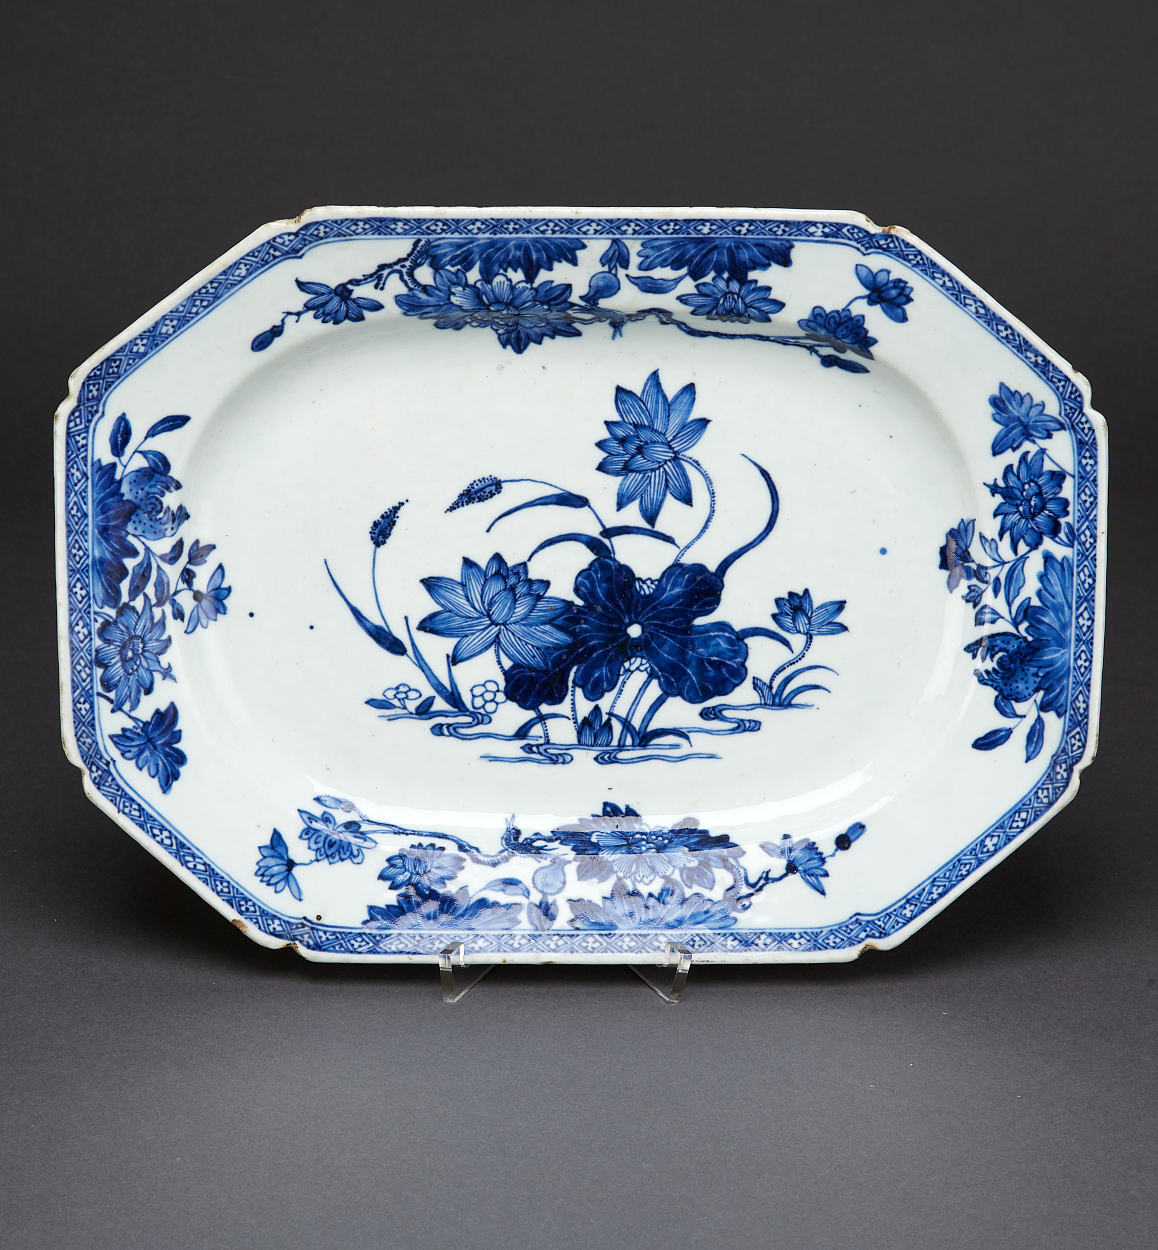 A Pair of Octagonal Blue and White Dishes